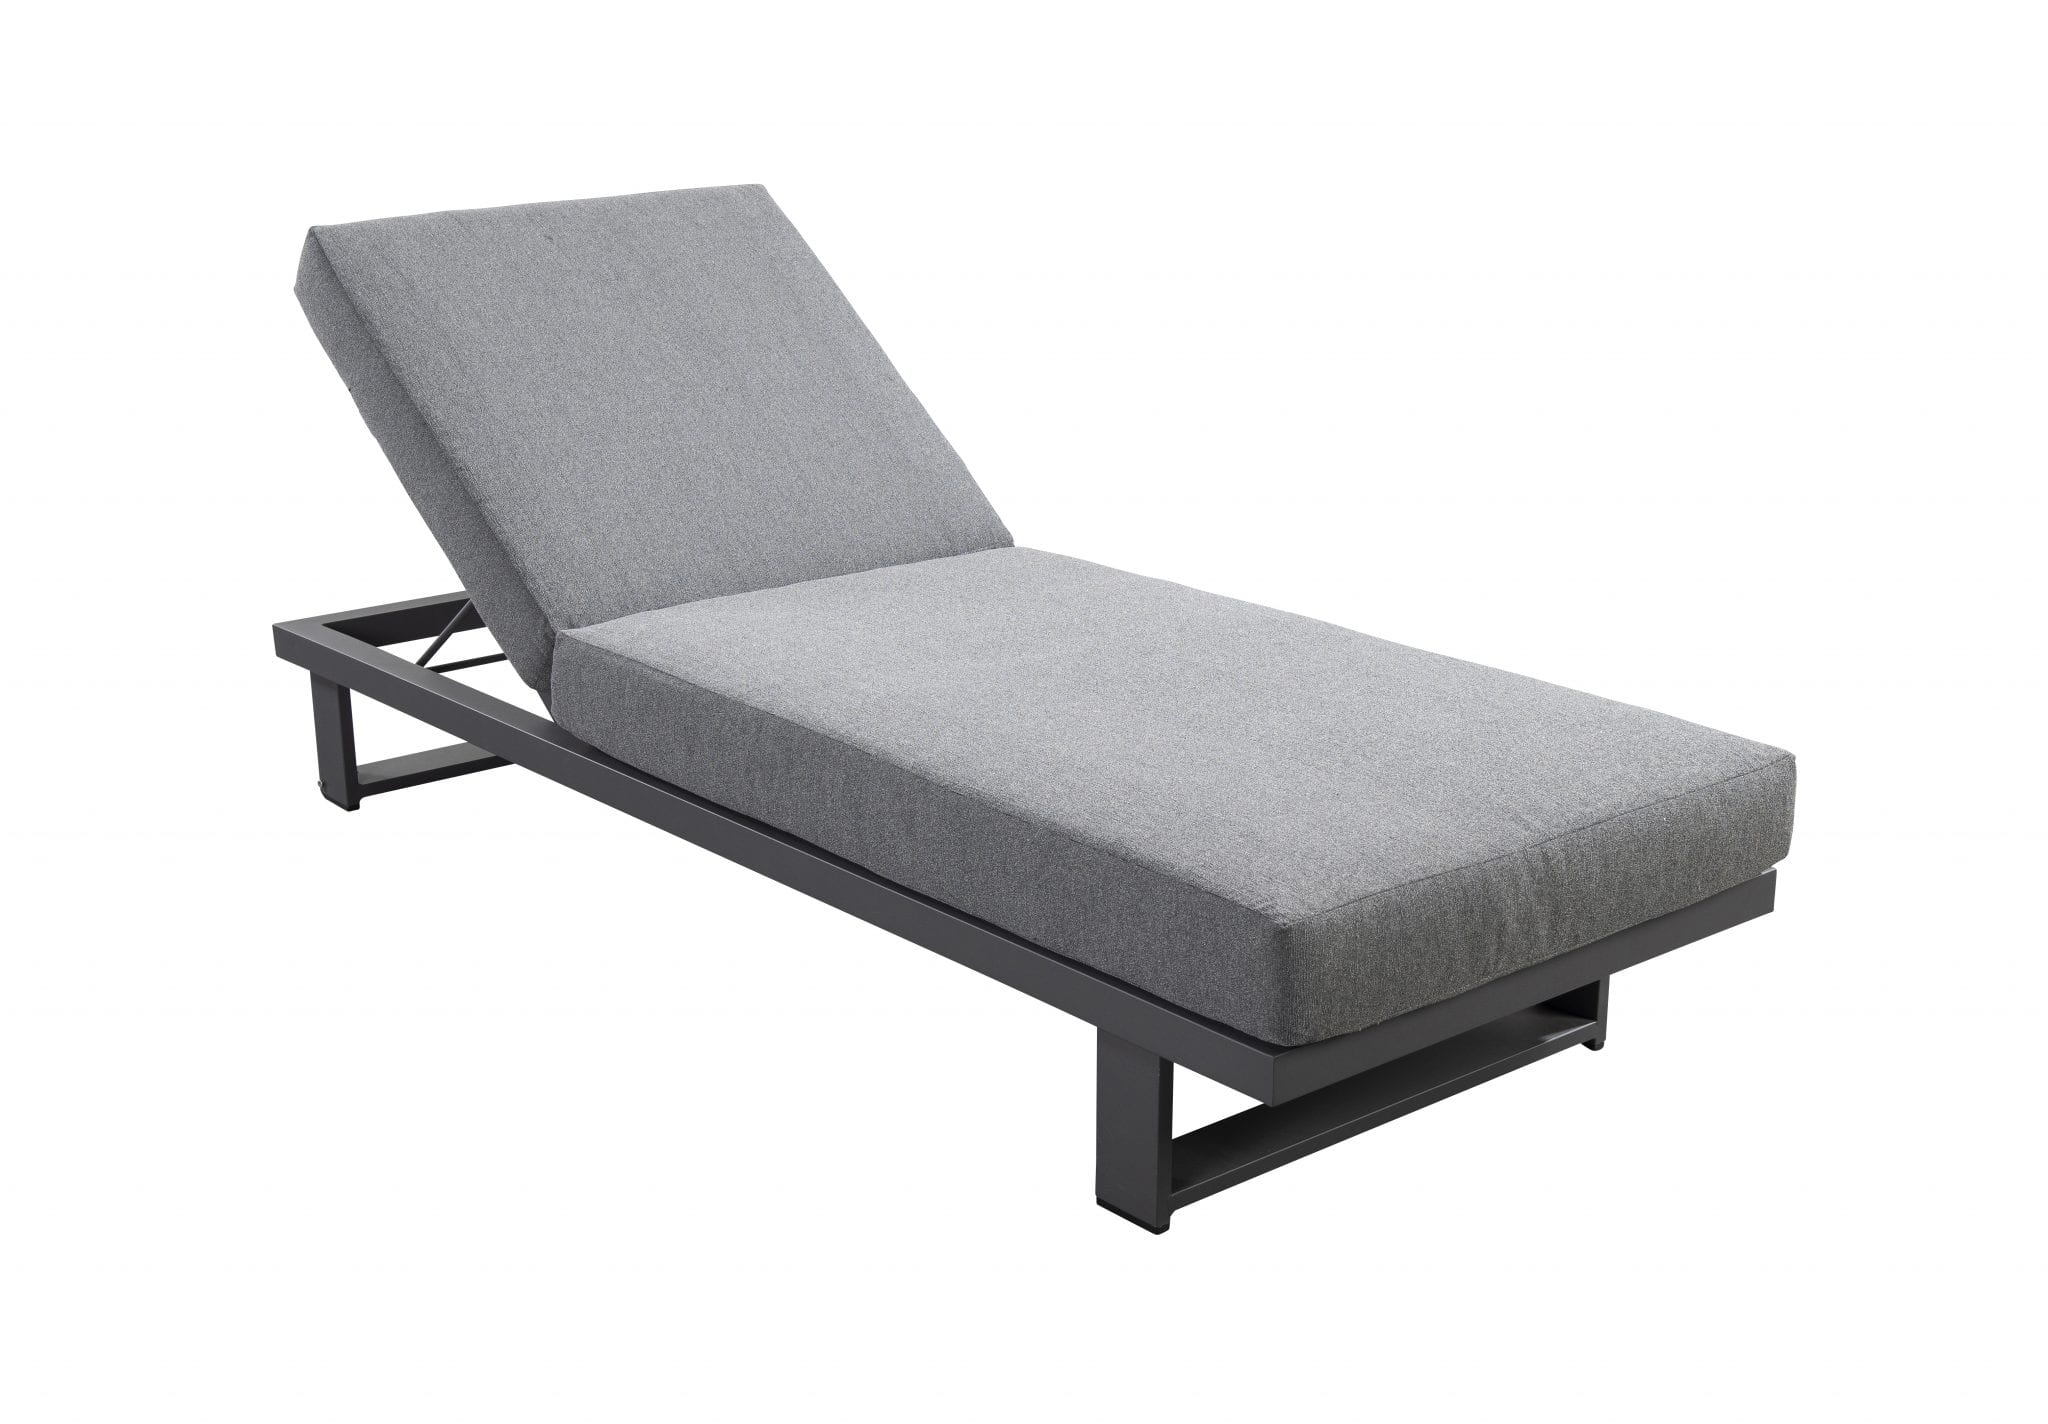 Kazoku lounger - dark grey | Yoi Furniture